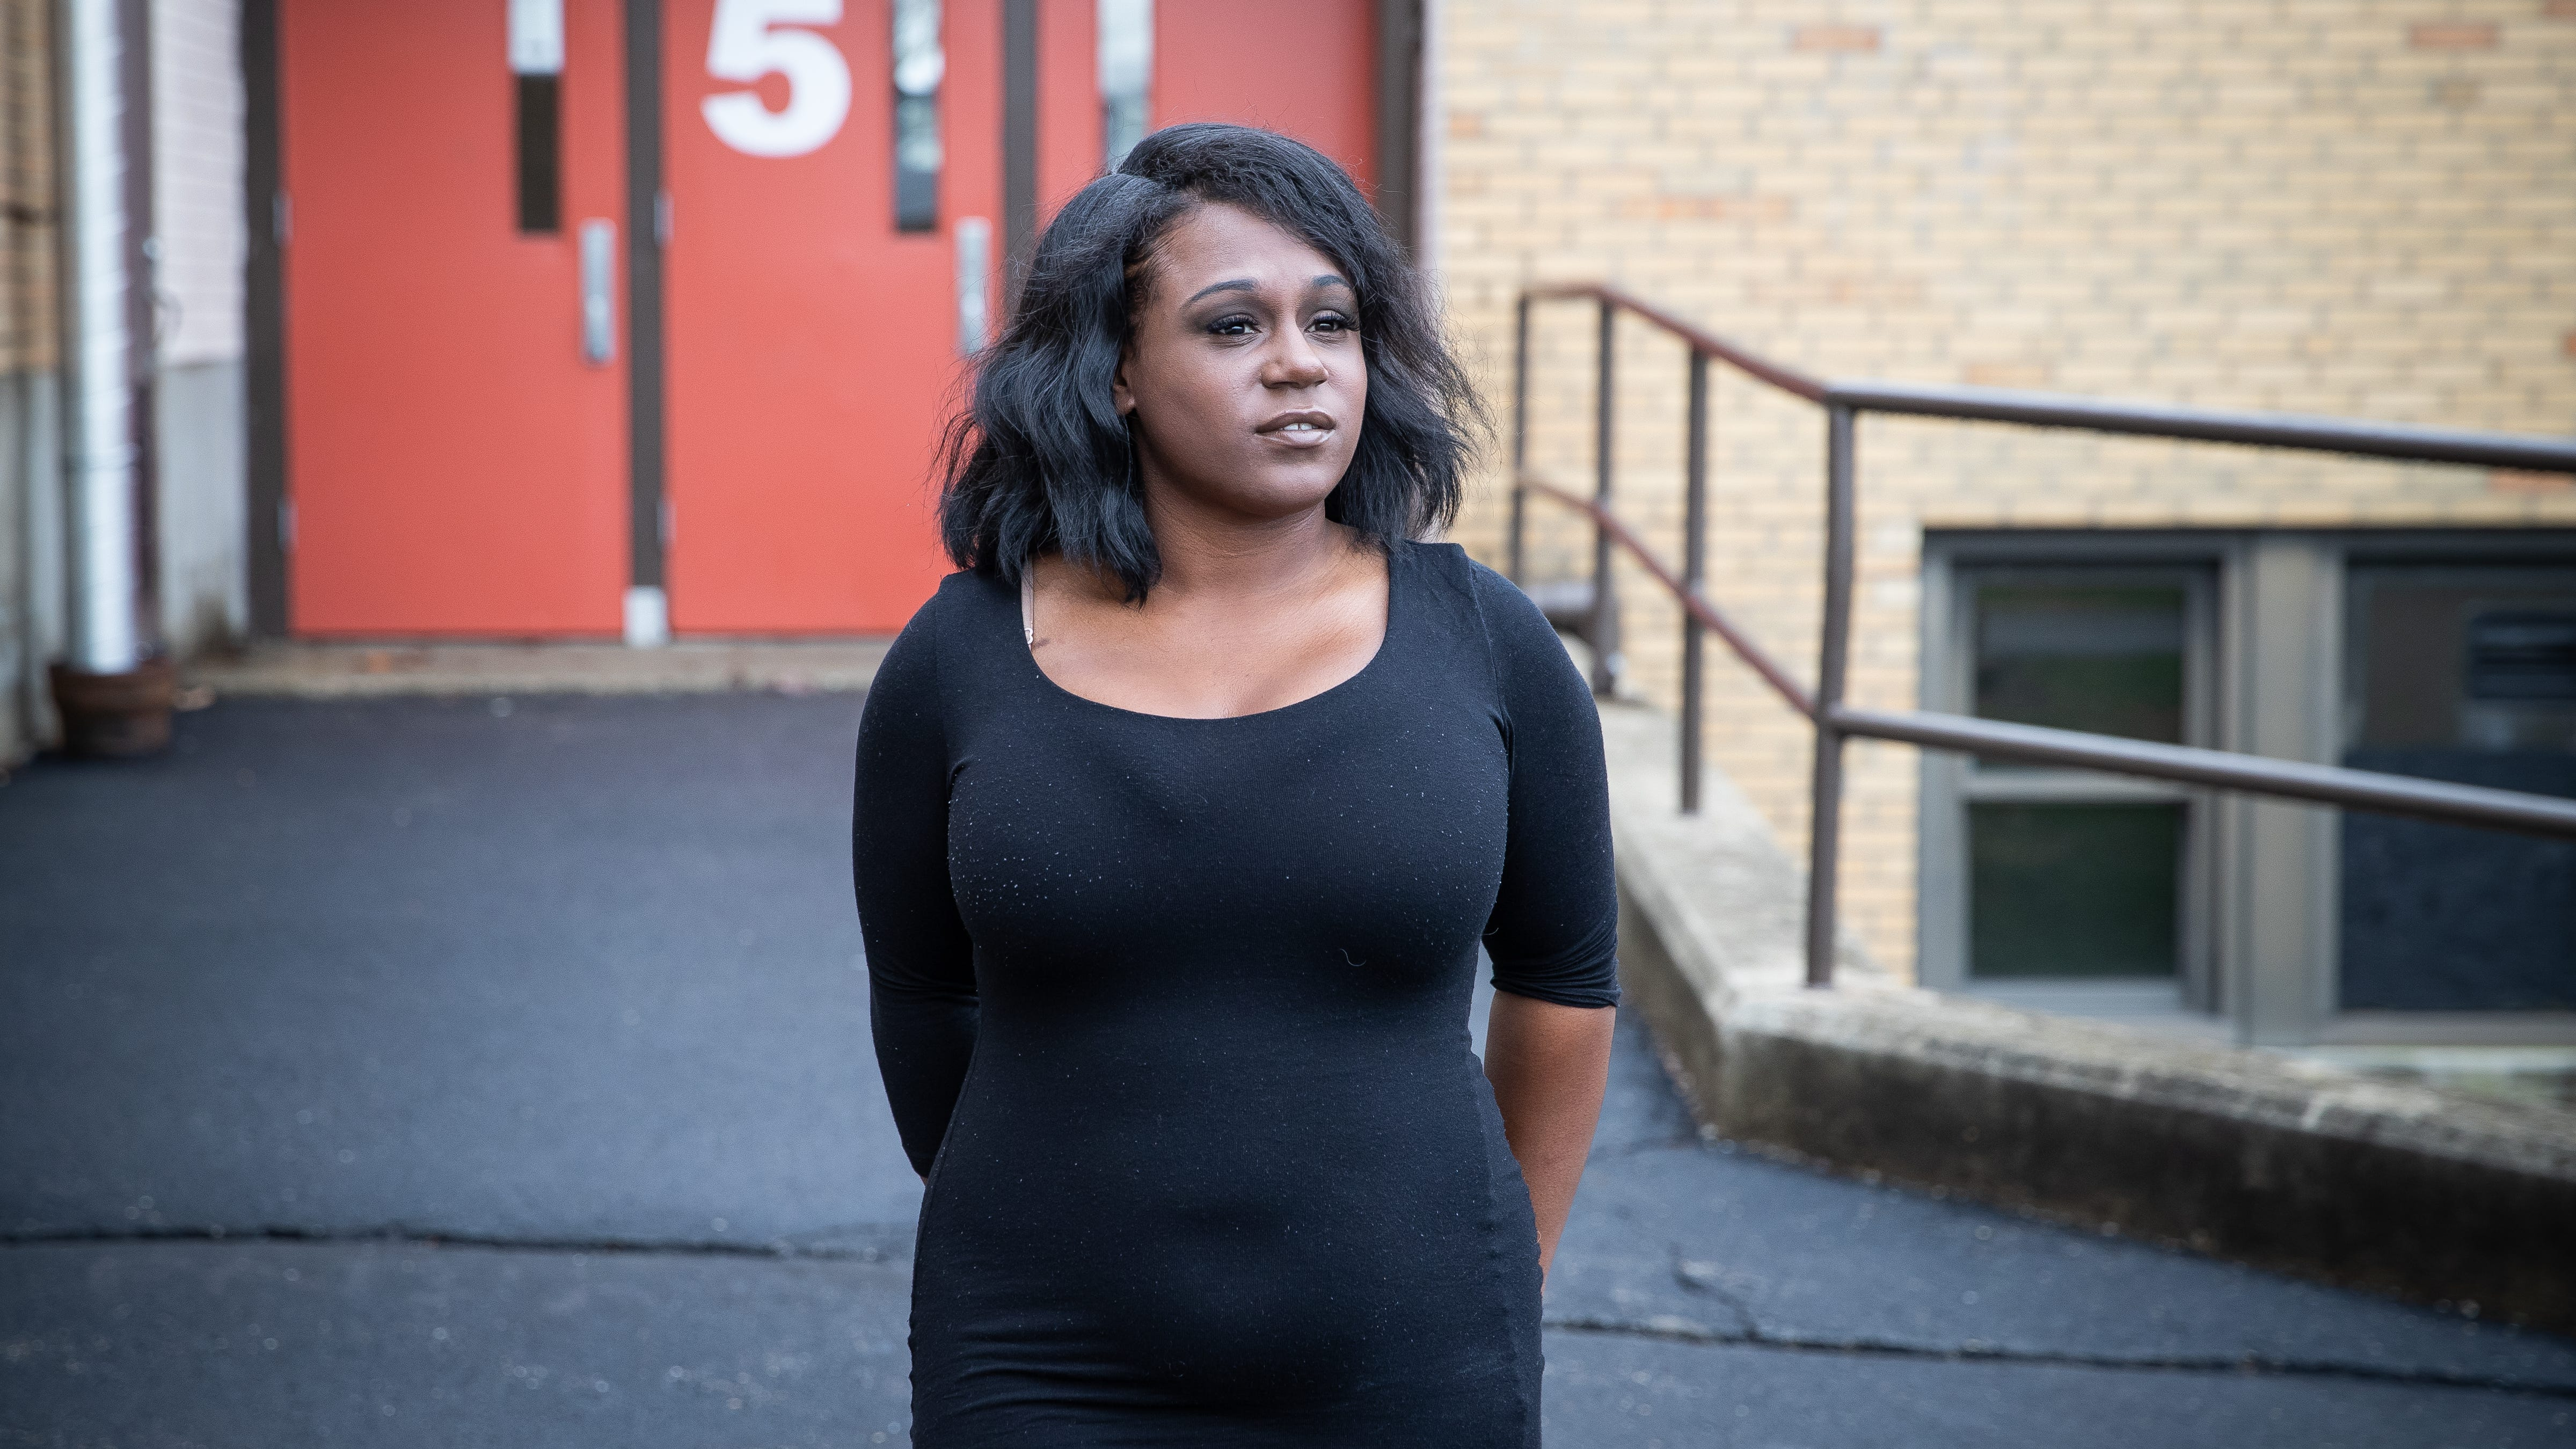 Ashley's Story: Ashley reveals her abuse and loses everyone she loves